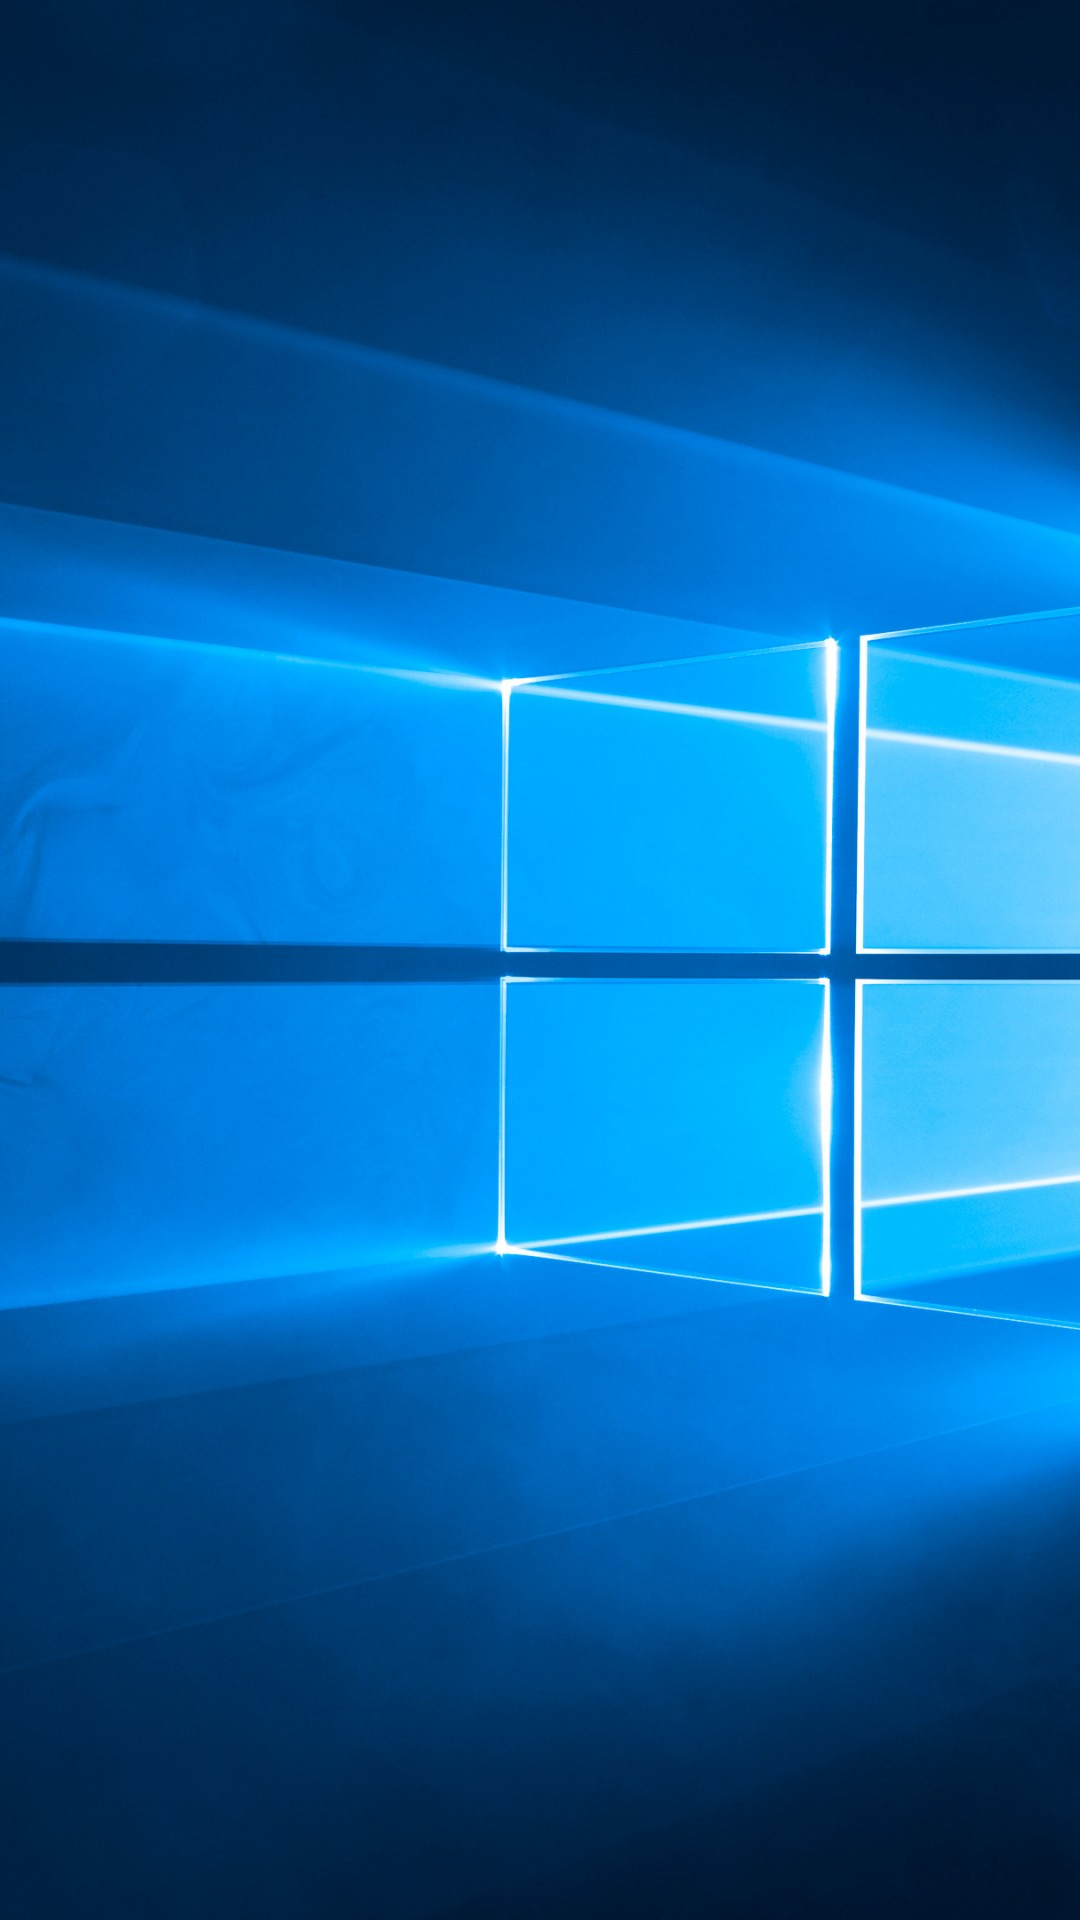 Wallpaper Windows 10, 4k, 5k wallpaper, Microsoft, blue, OS #6992